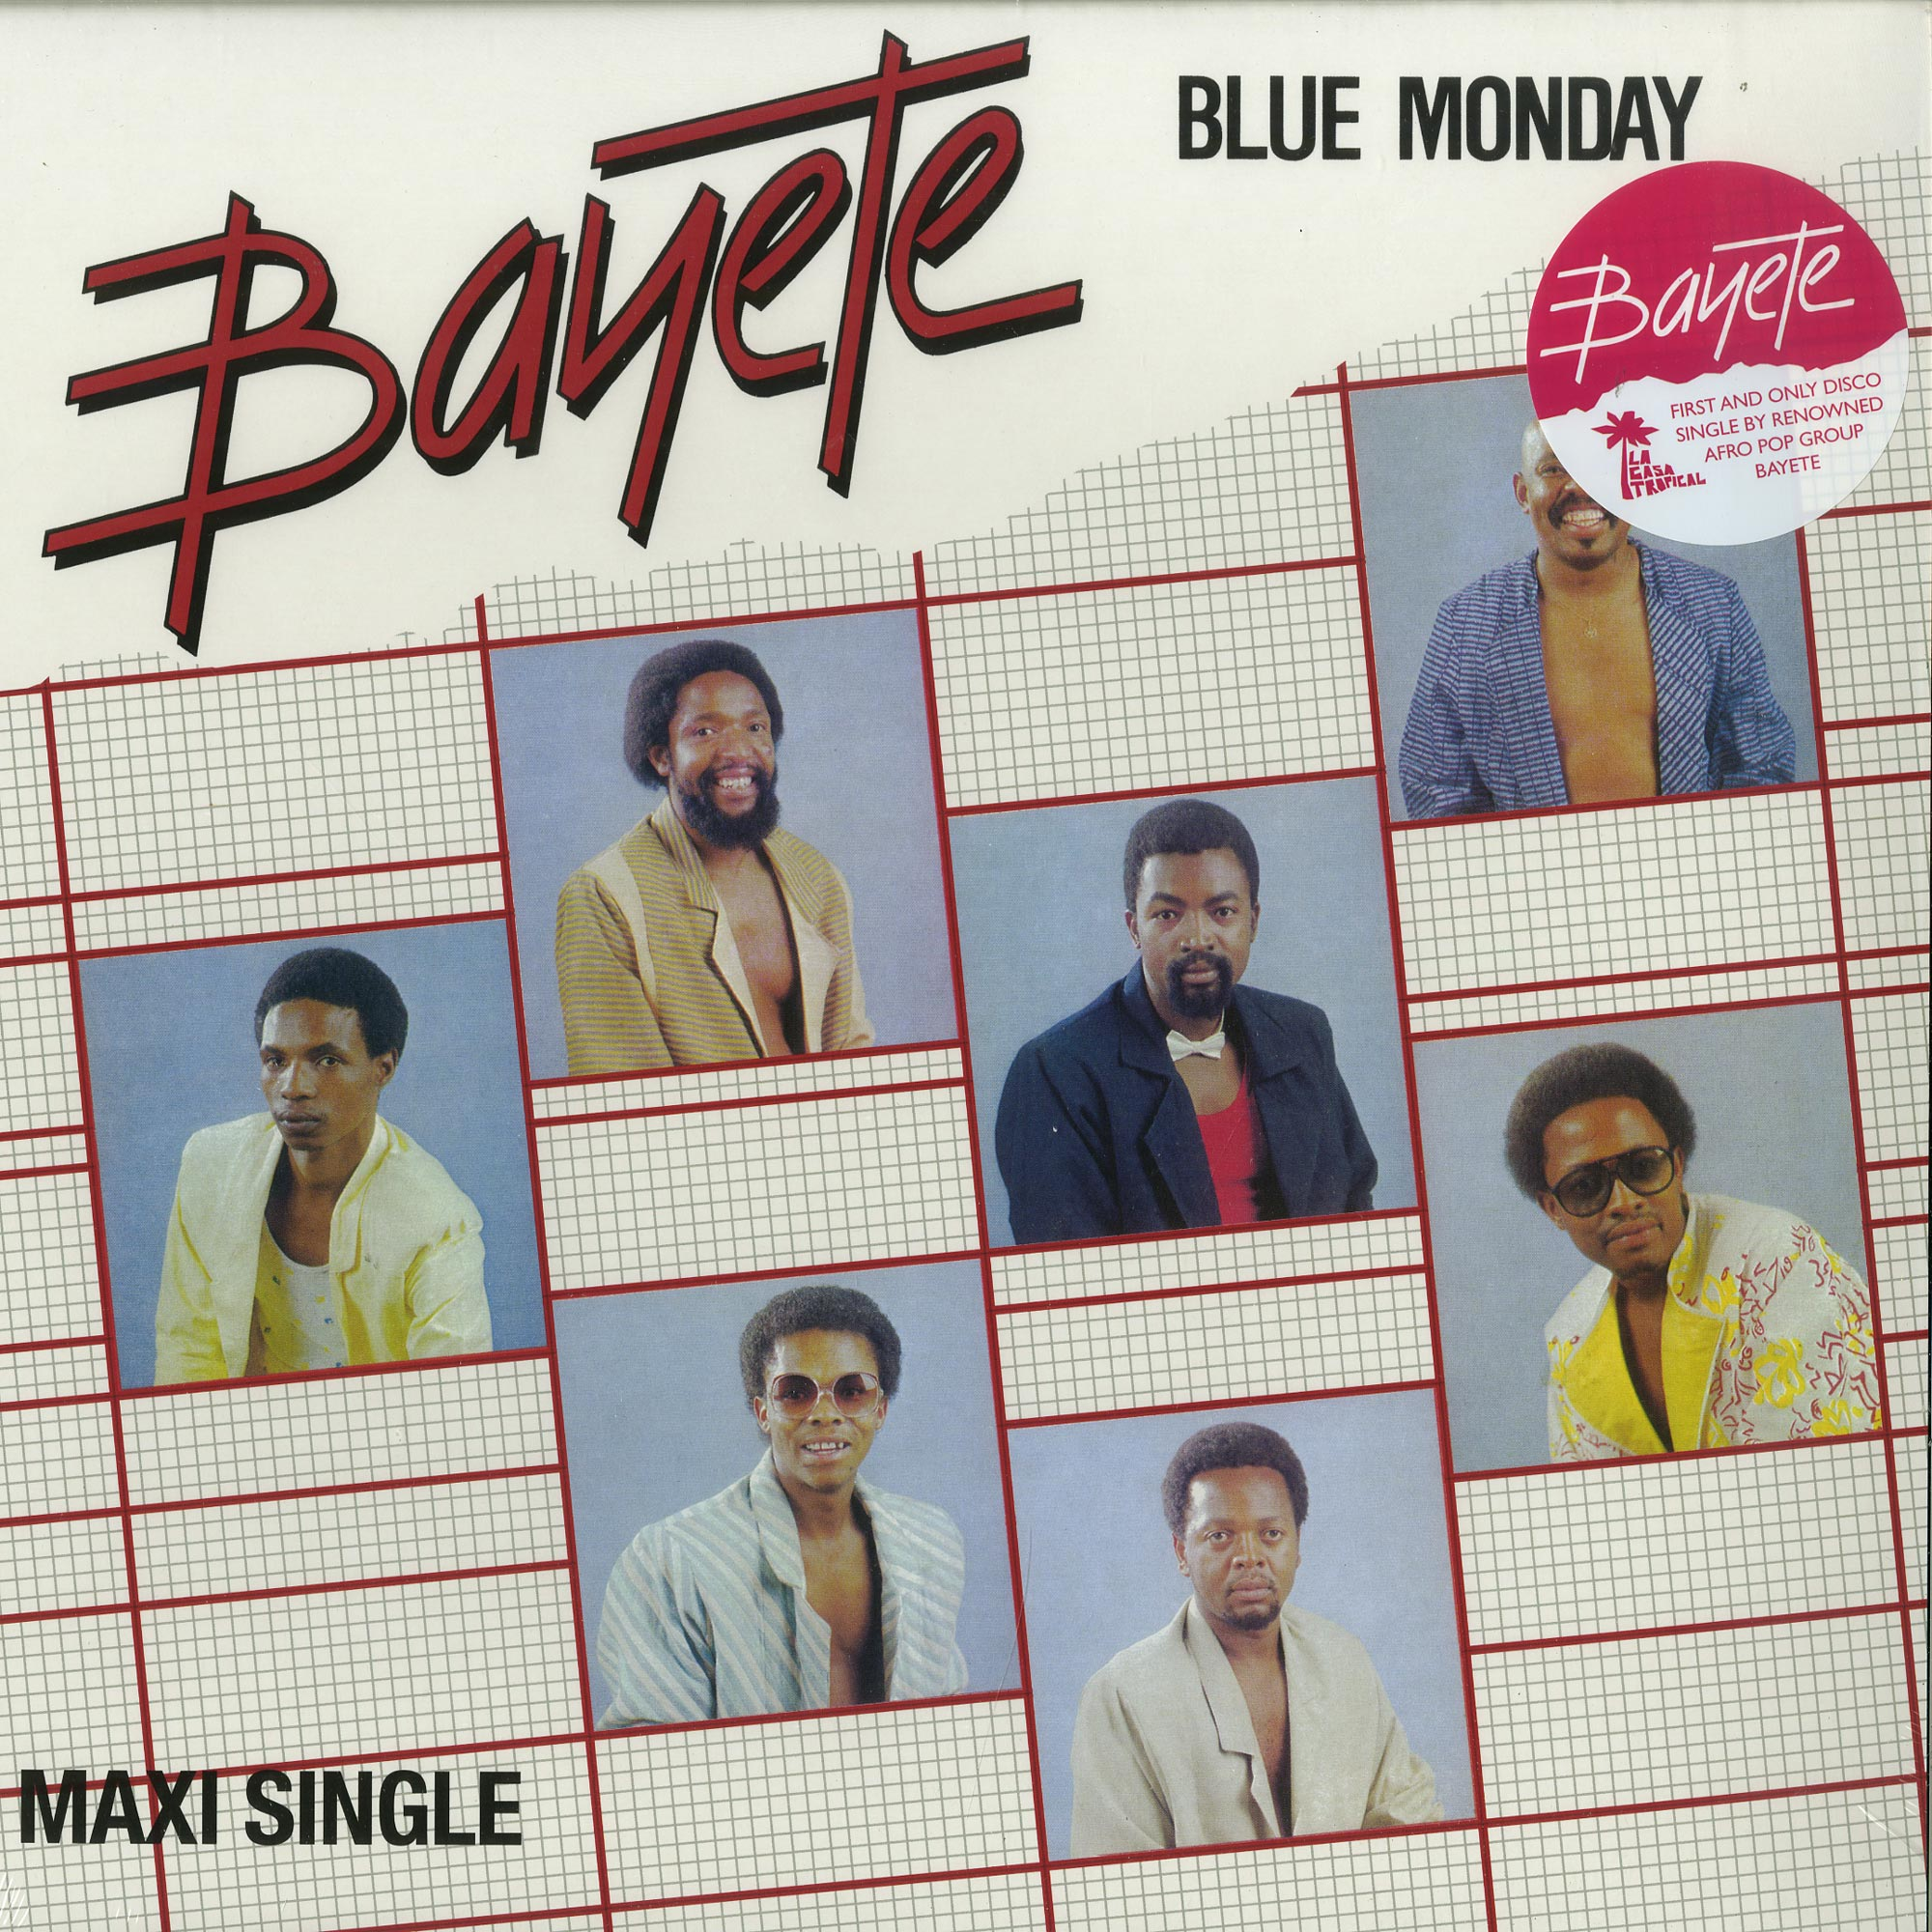 Bayete - BLUE MONDAY / OPEN YOUR HEART